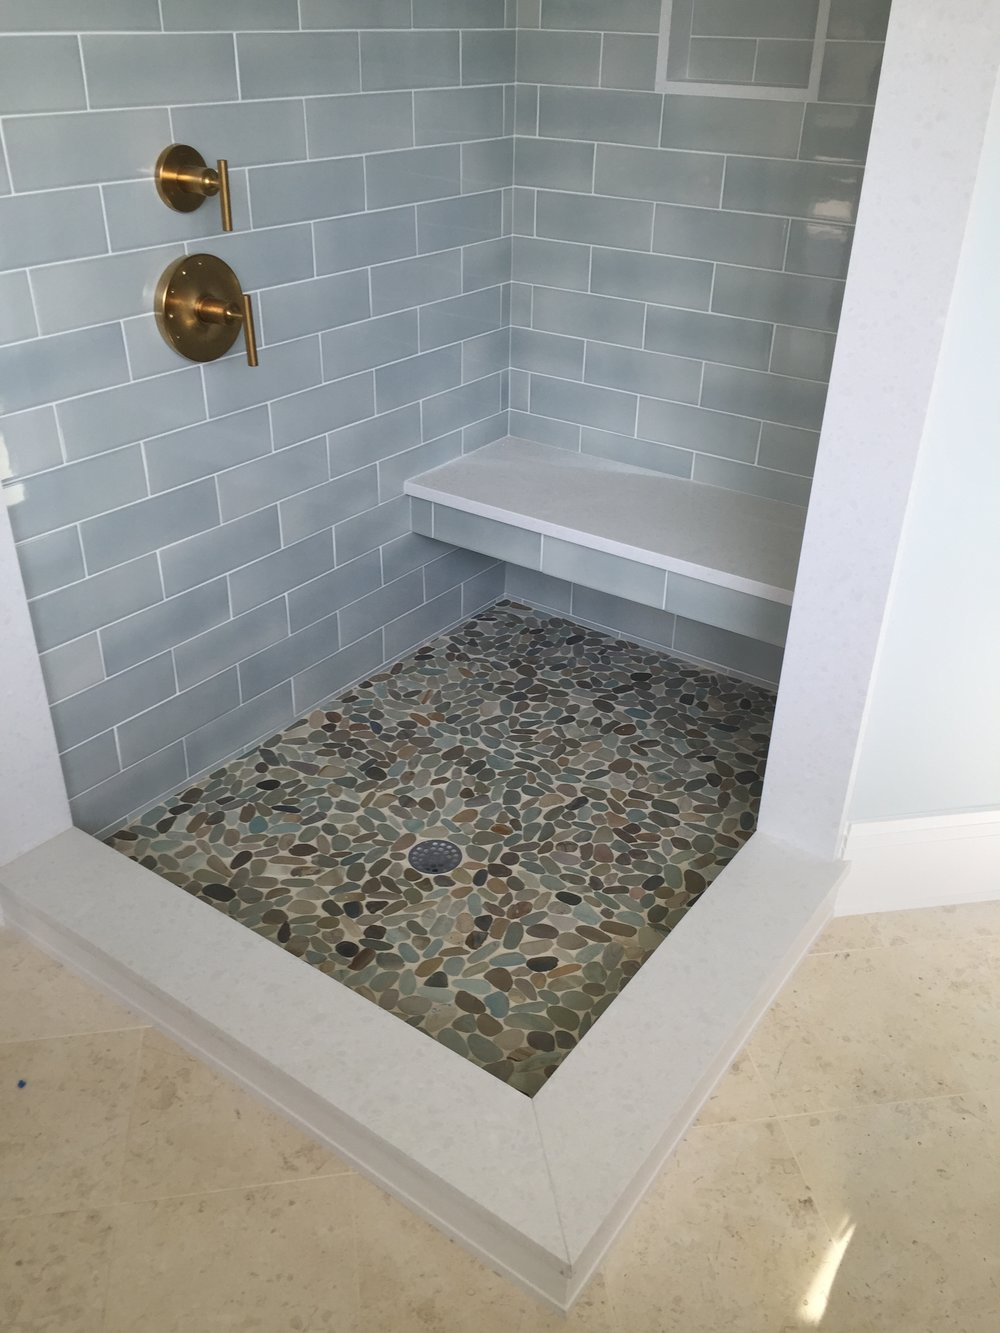 Subway tile with Pebble floor